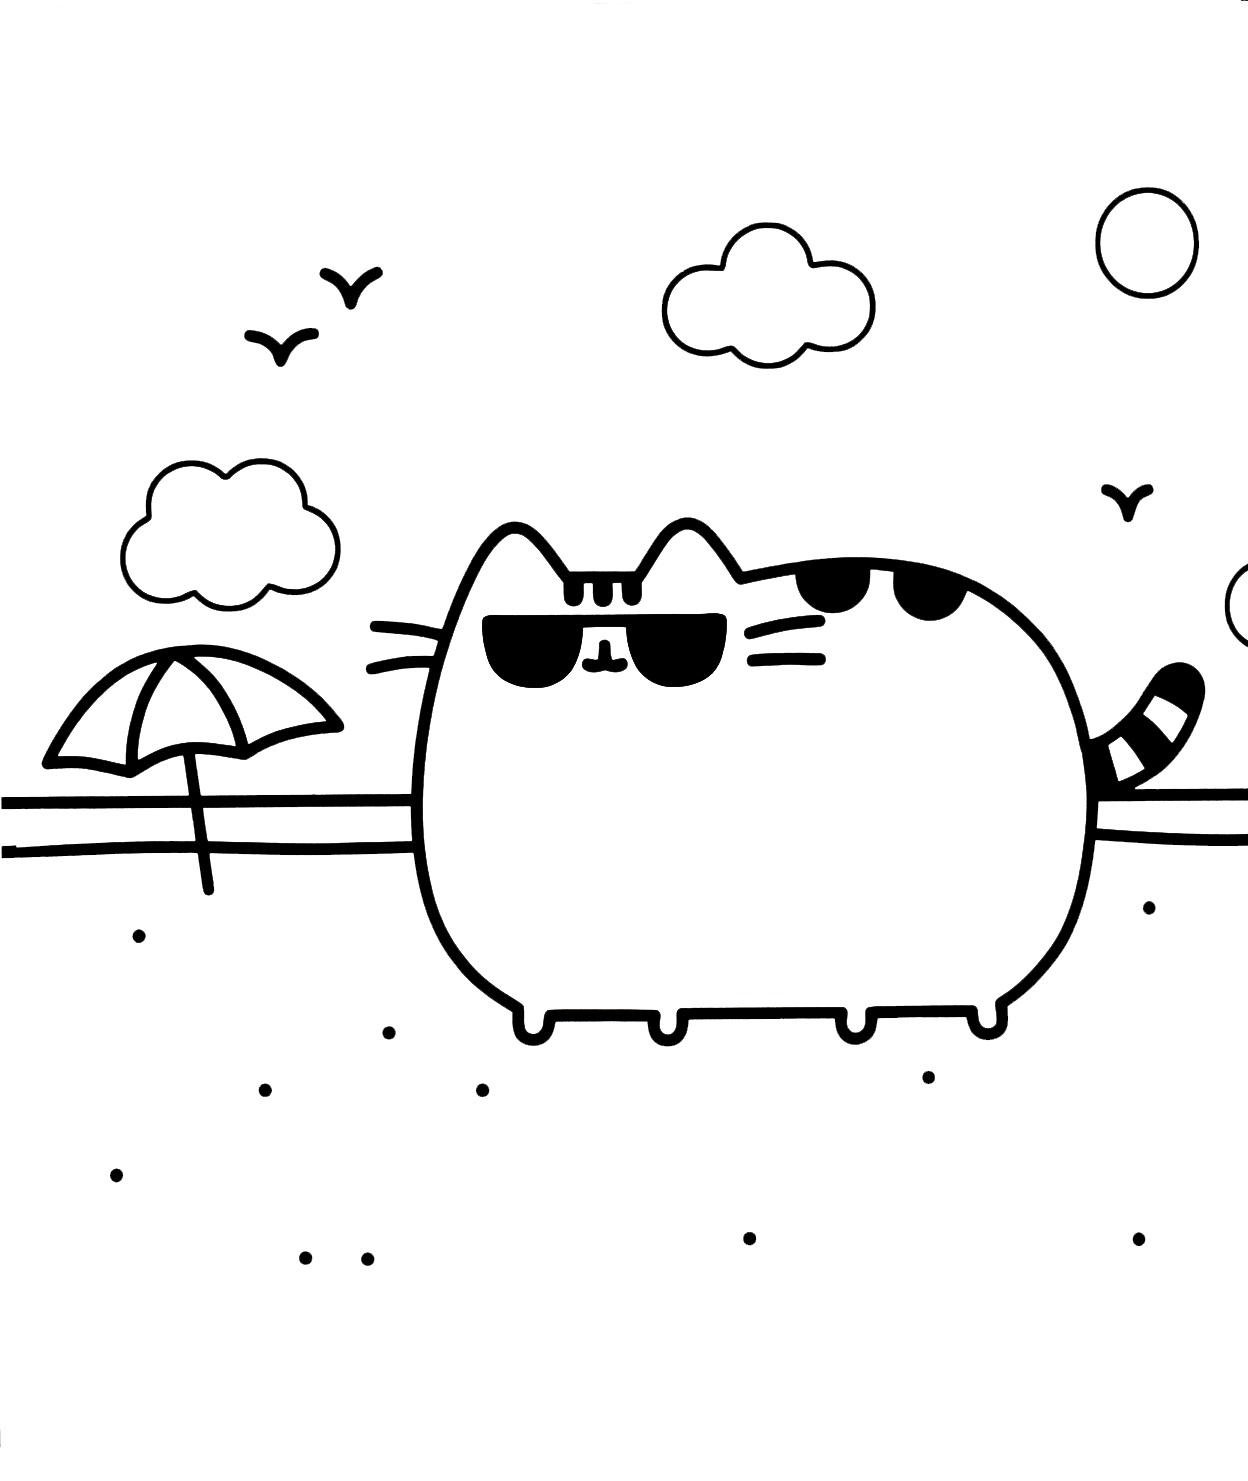 donut pusheen cat coloring pages pusheen donuts and unicorn doodle art doodling adult pusheen coloring cat pages donut